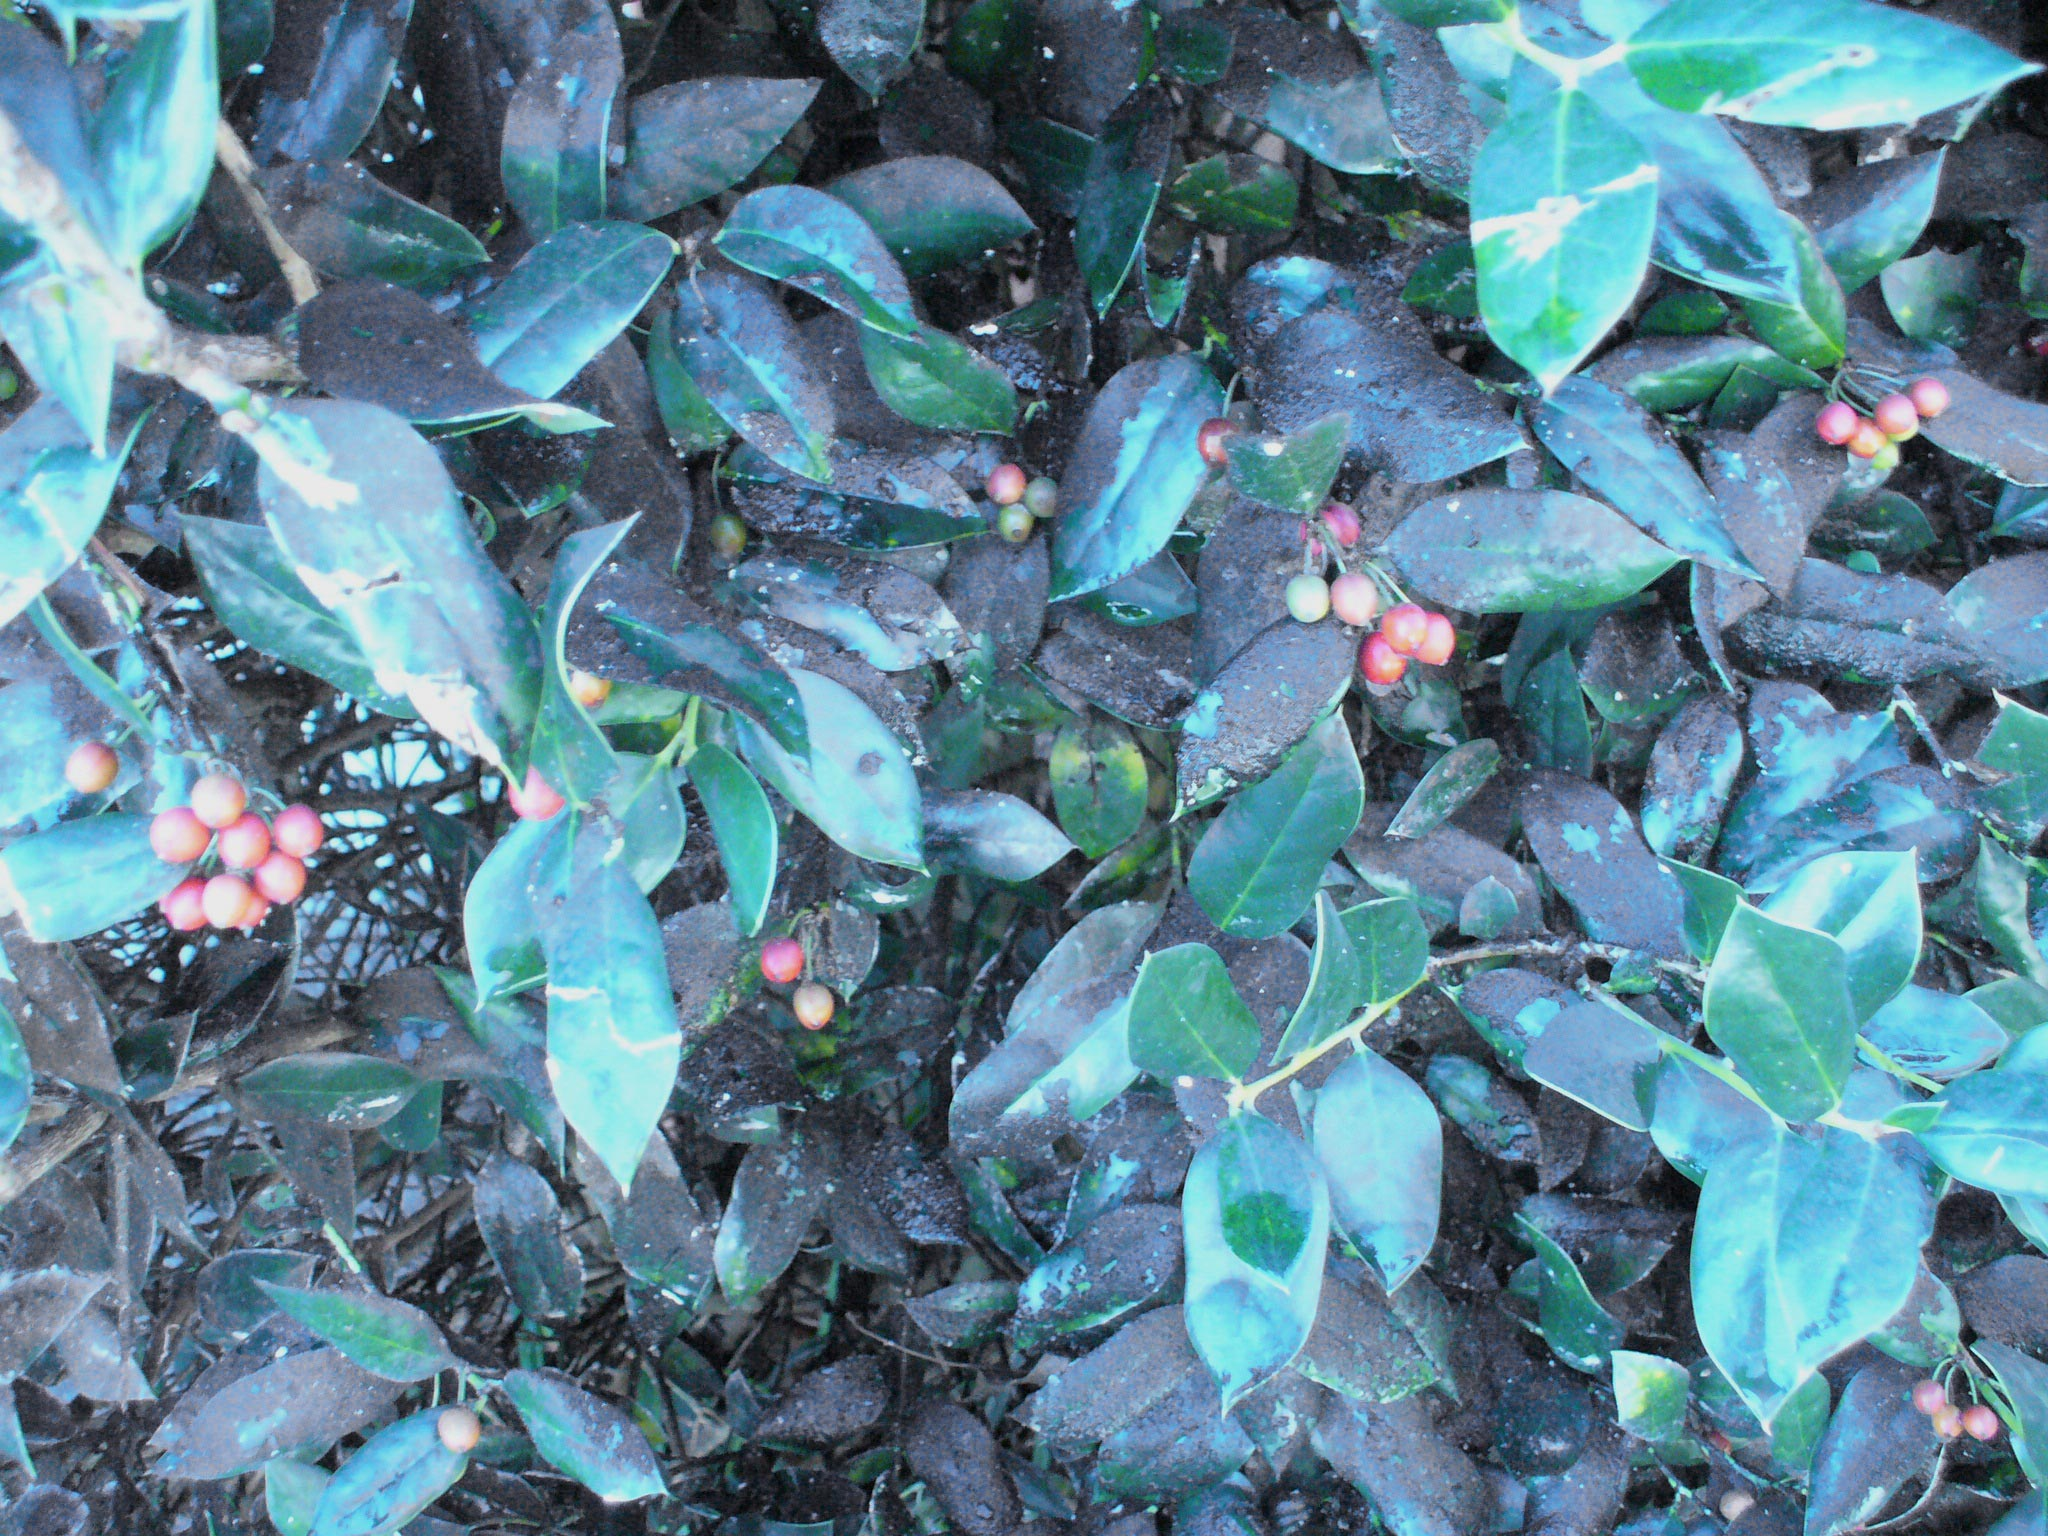 sooty mold on holly leaves